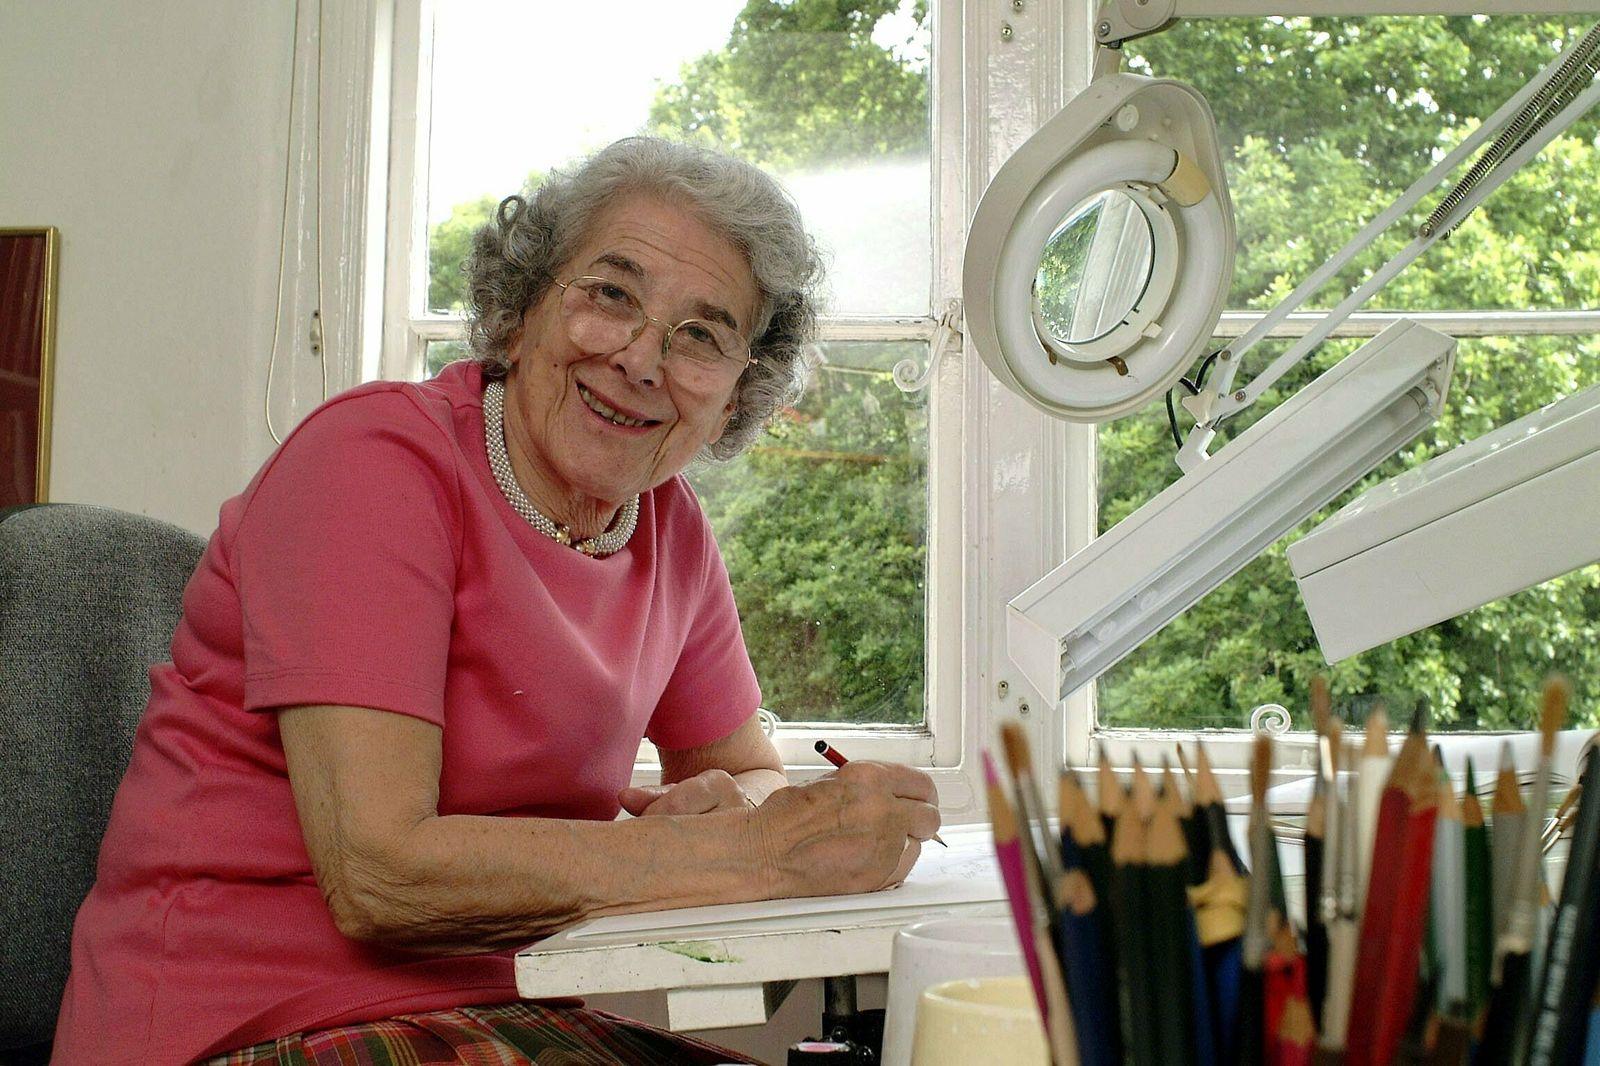 "FILE - In this May 23, 2003 file photo British writer Judith Kerr sits in her working room in London, England. Judith Kerr, author and illustrator of the bestselling ""The Tiger Who Came to Tea"" and other beloved children's books, has died at the age of 95. ( Daniel Sambraus/dpa via AP)"